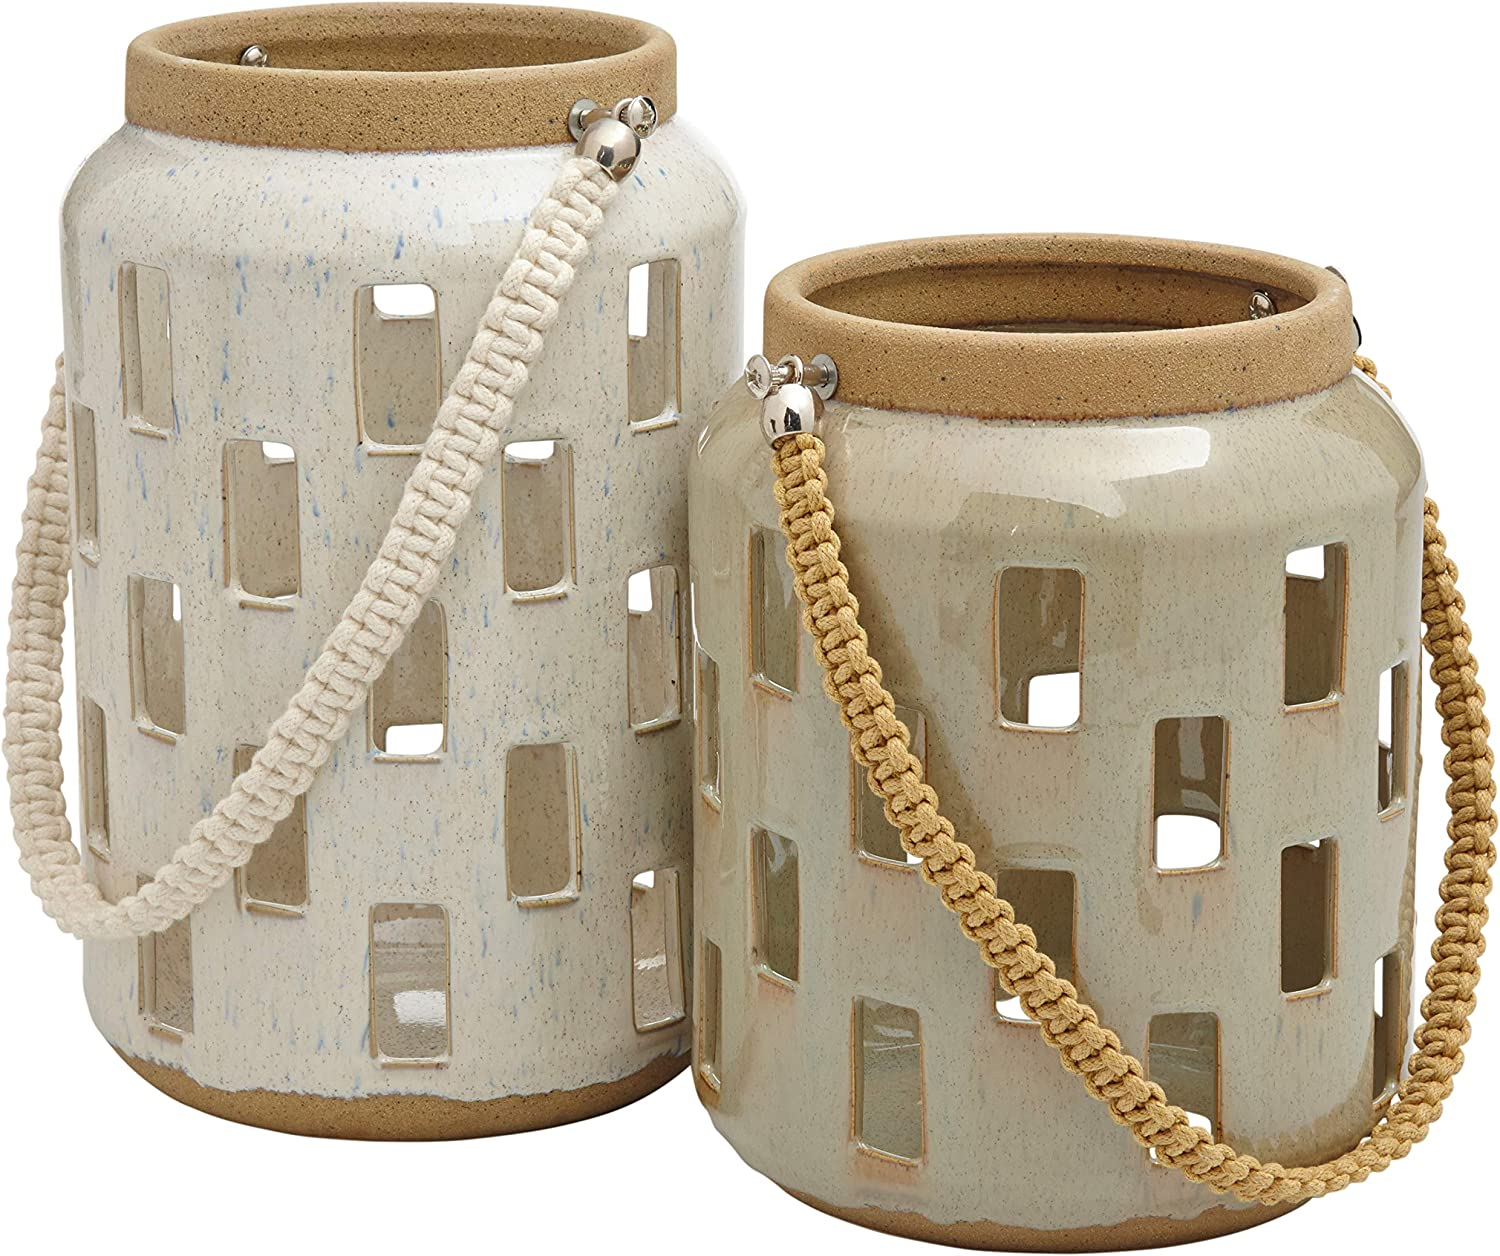 Amazon Com Amazon Brand Rivet Modern Cylindrical Stoneware Candle Holder Lantern Home Decor Set Set Of 2 Gray And Cream Home Kitchen